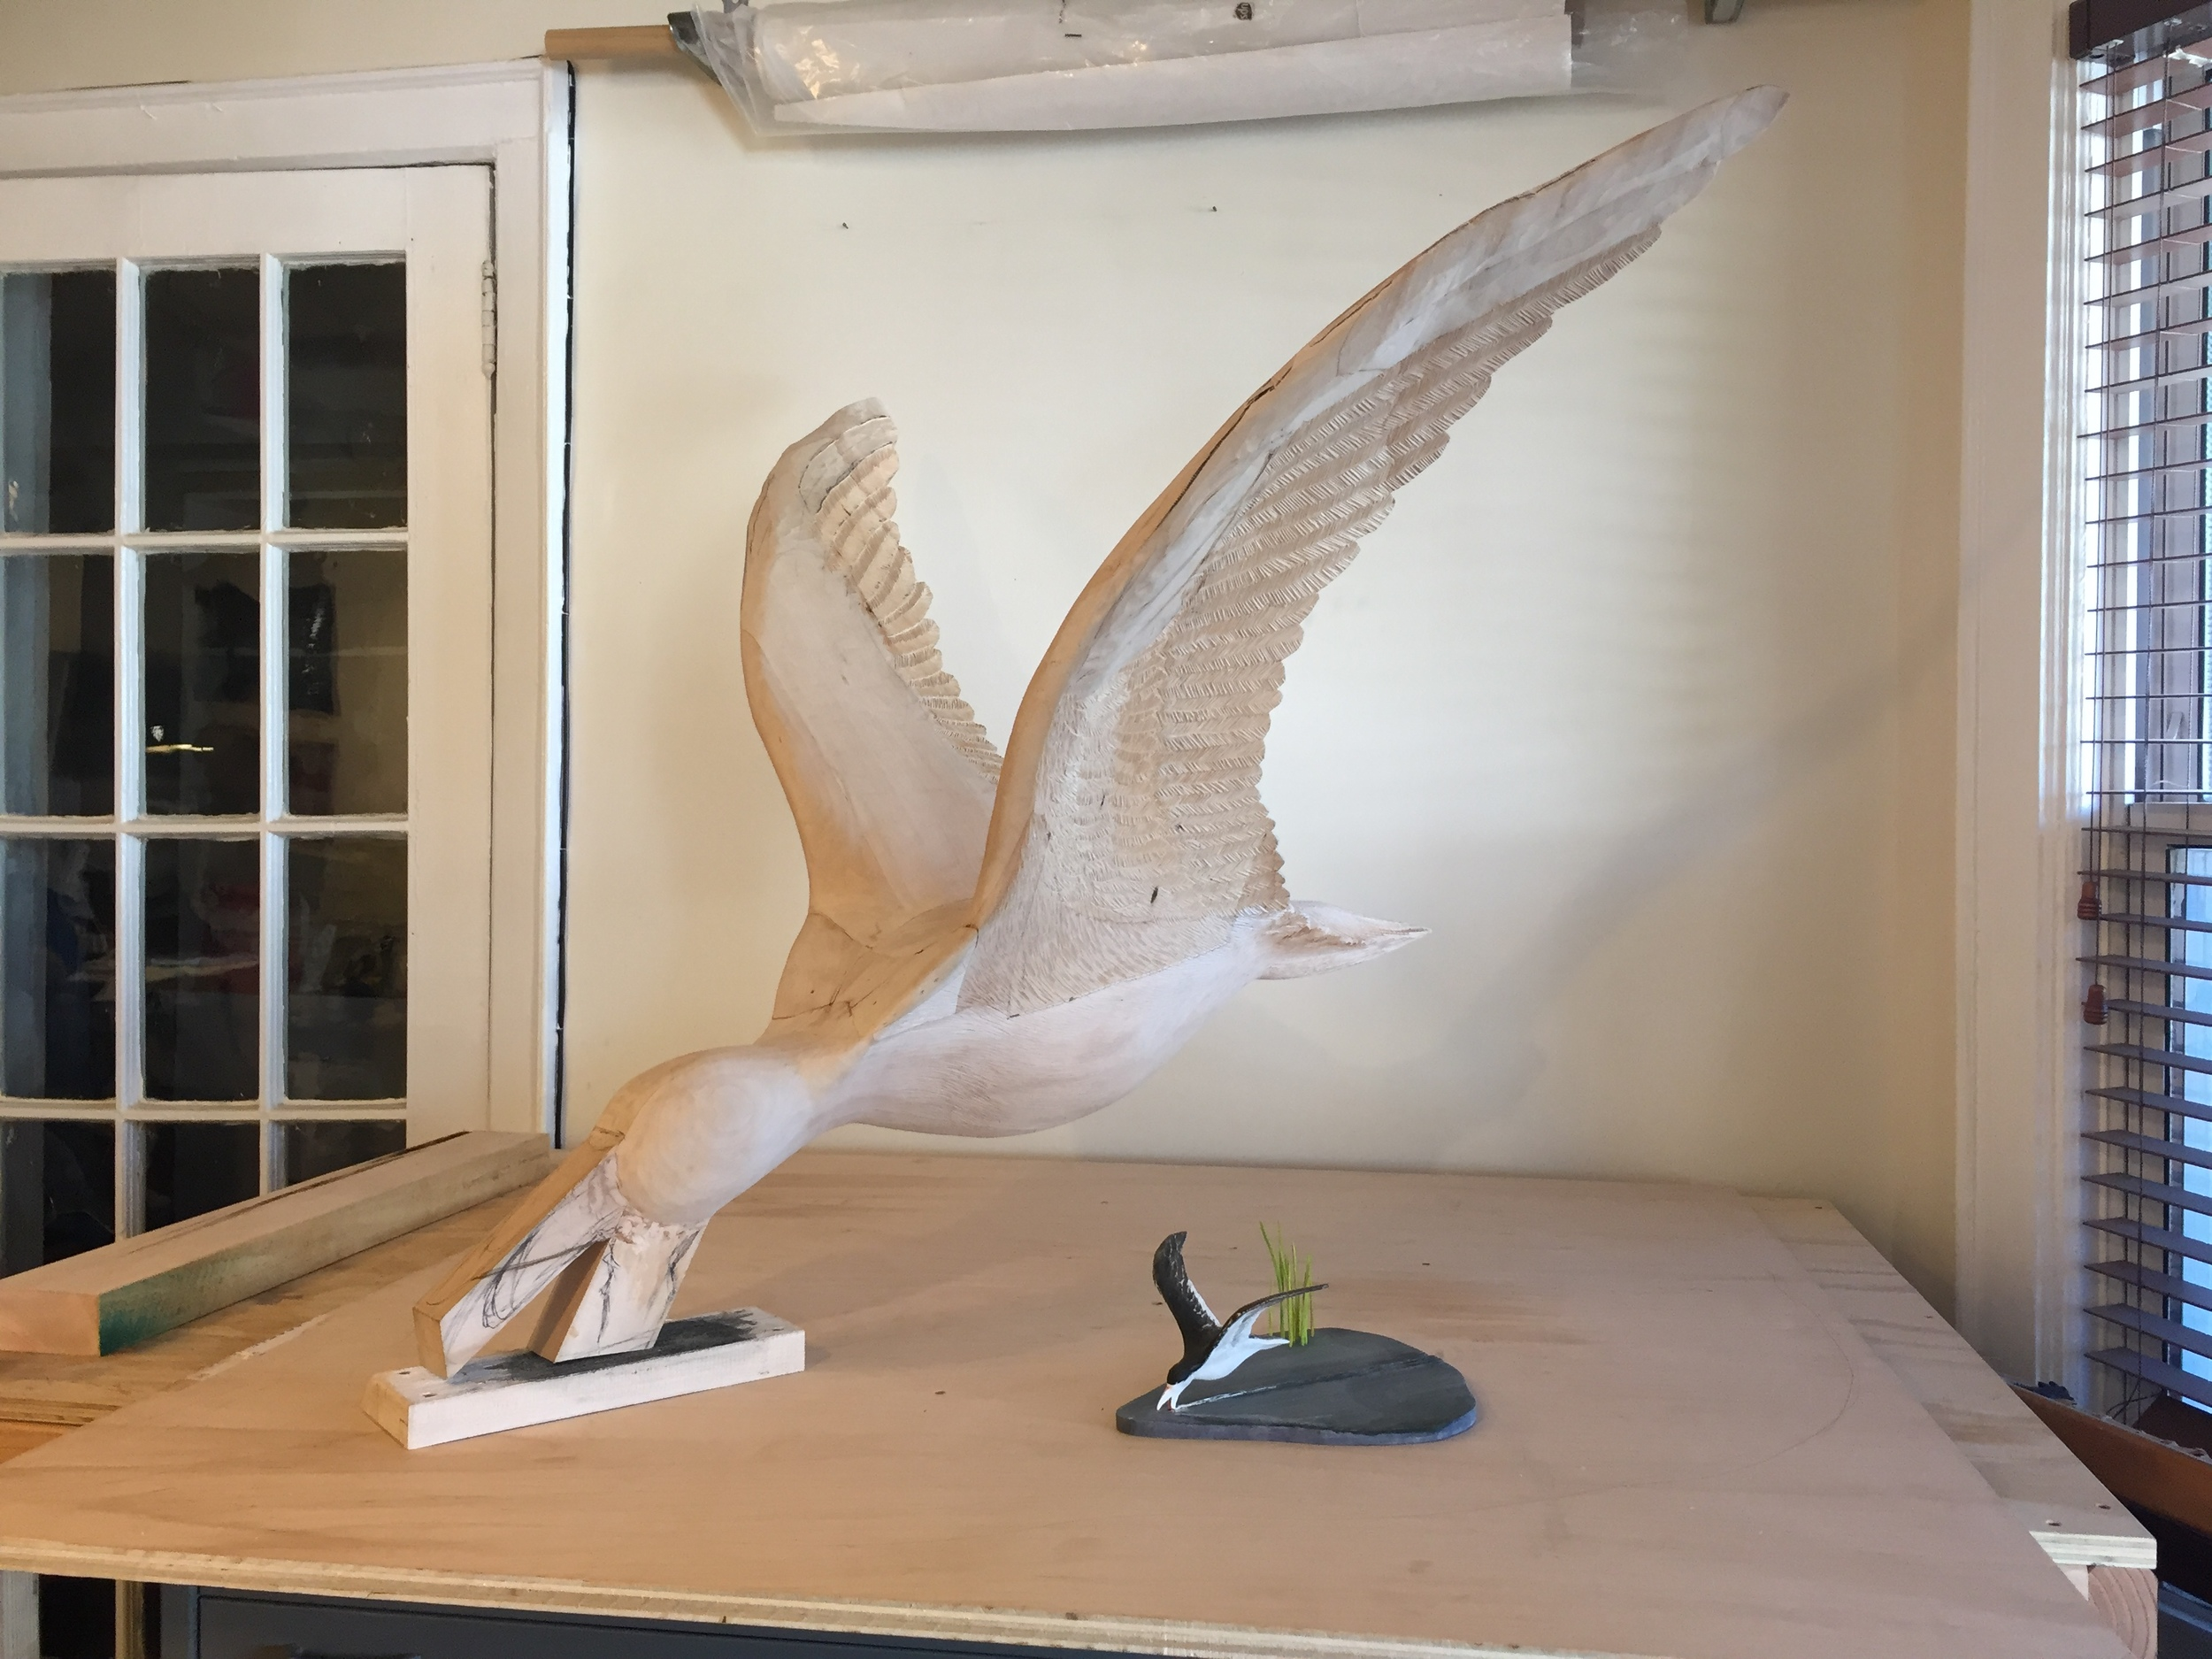 The maquette and full scale work next to each other. Next steps involve buying more wood and carving the base, along with continued carving on the wings, the body and the beak..